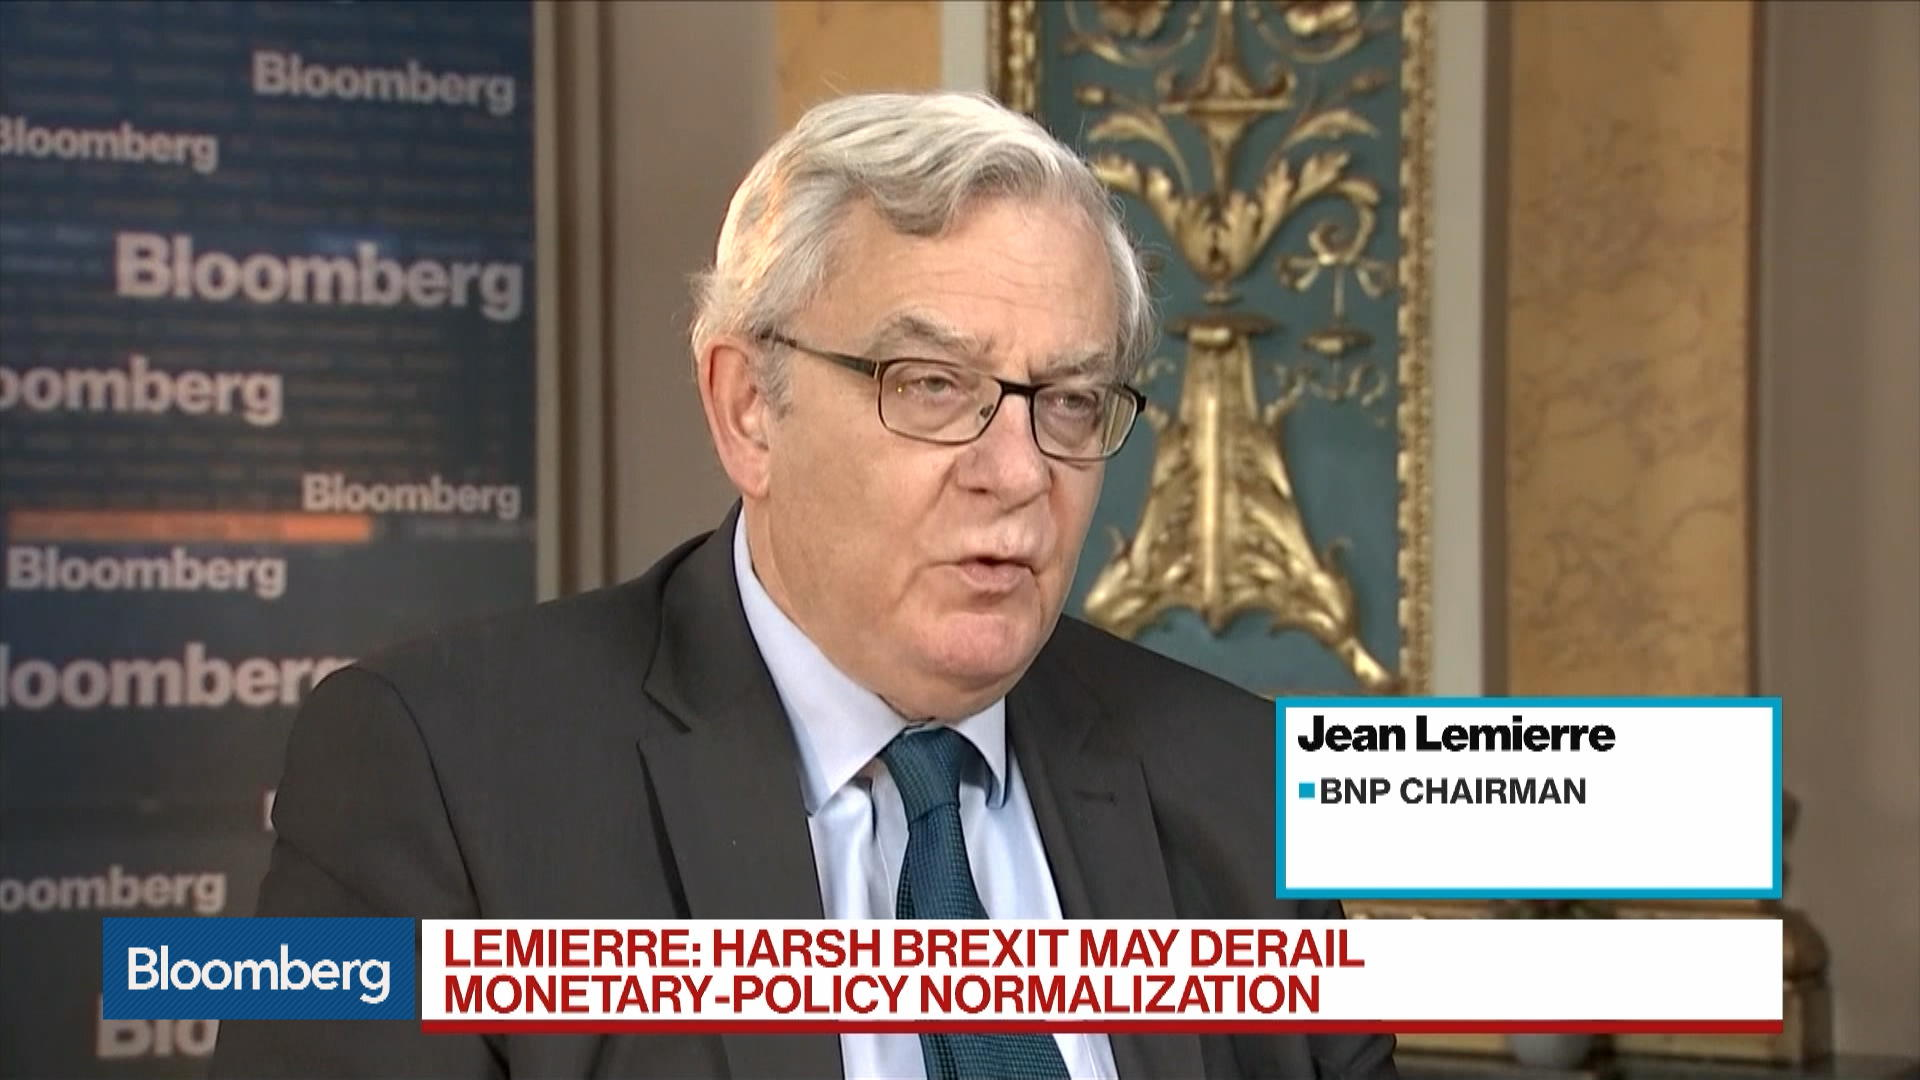 BNP Says a `Harsh Brexit' May Derail Monetary-Policy Normalization